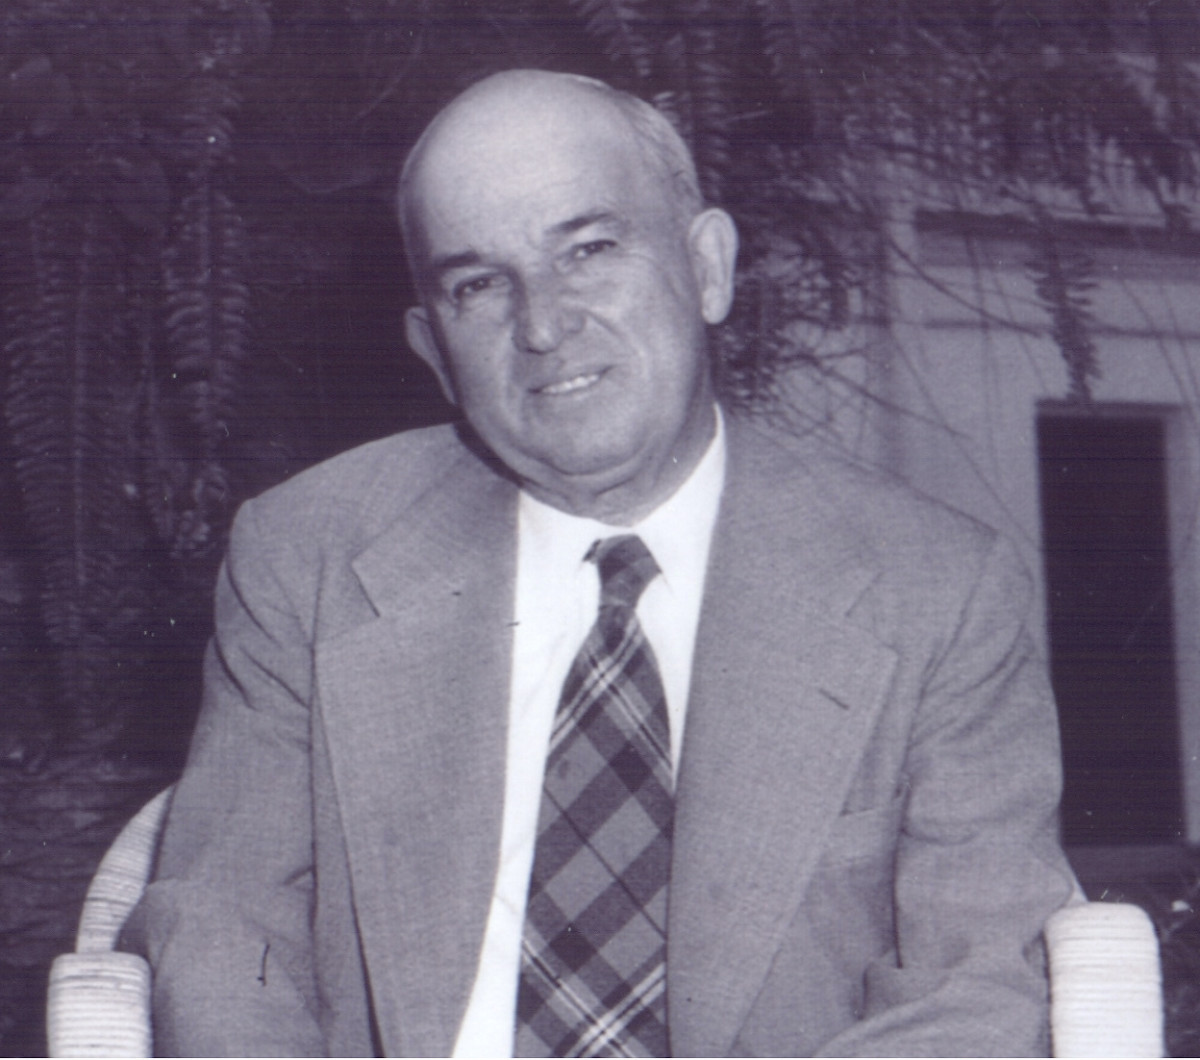 William P. Bell was one of 14 charter members of the American Society of Golf Course Architects, which was formed in 1947.